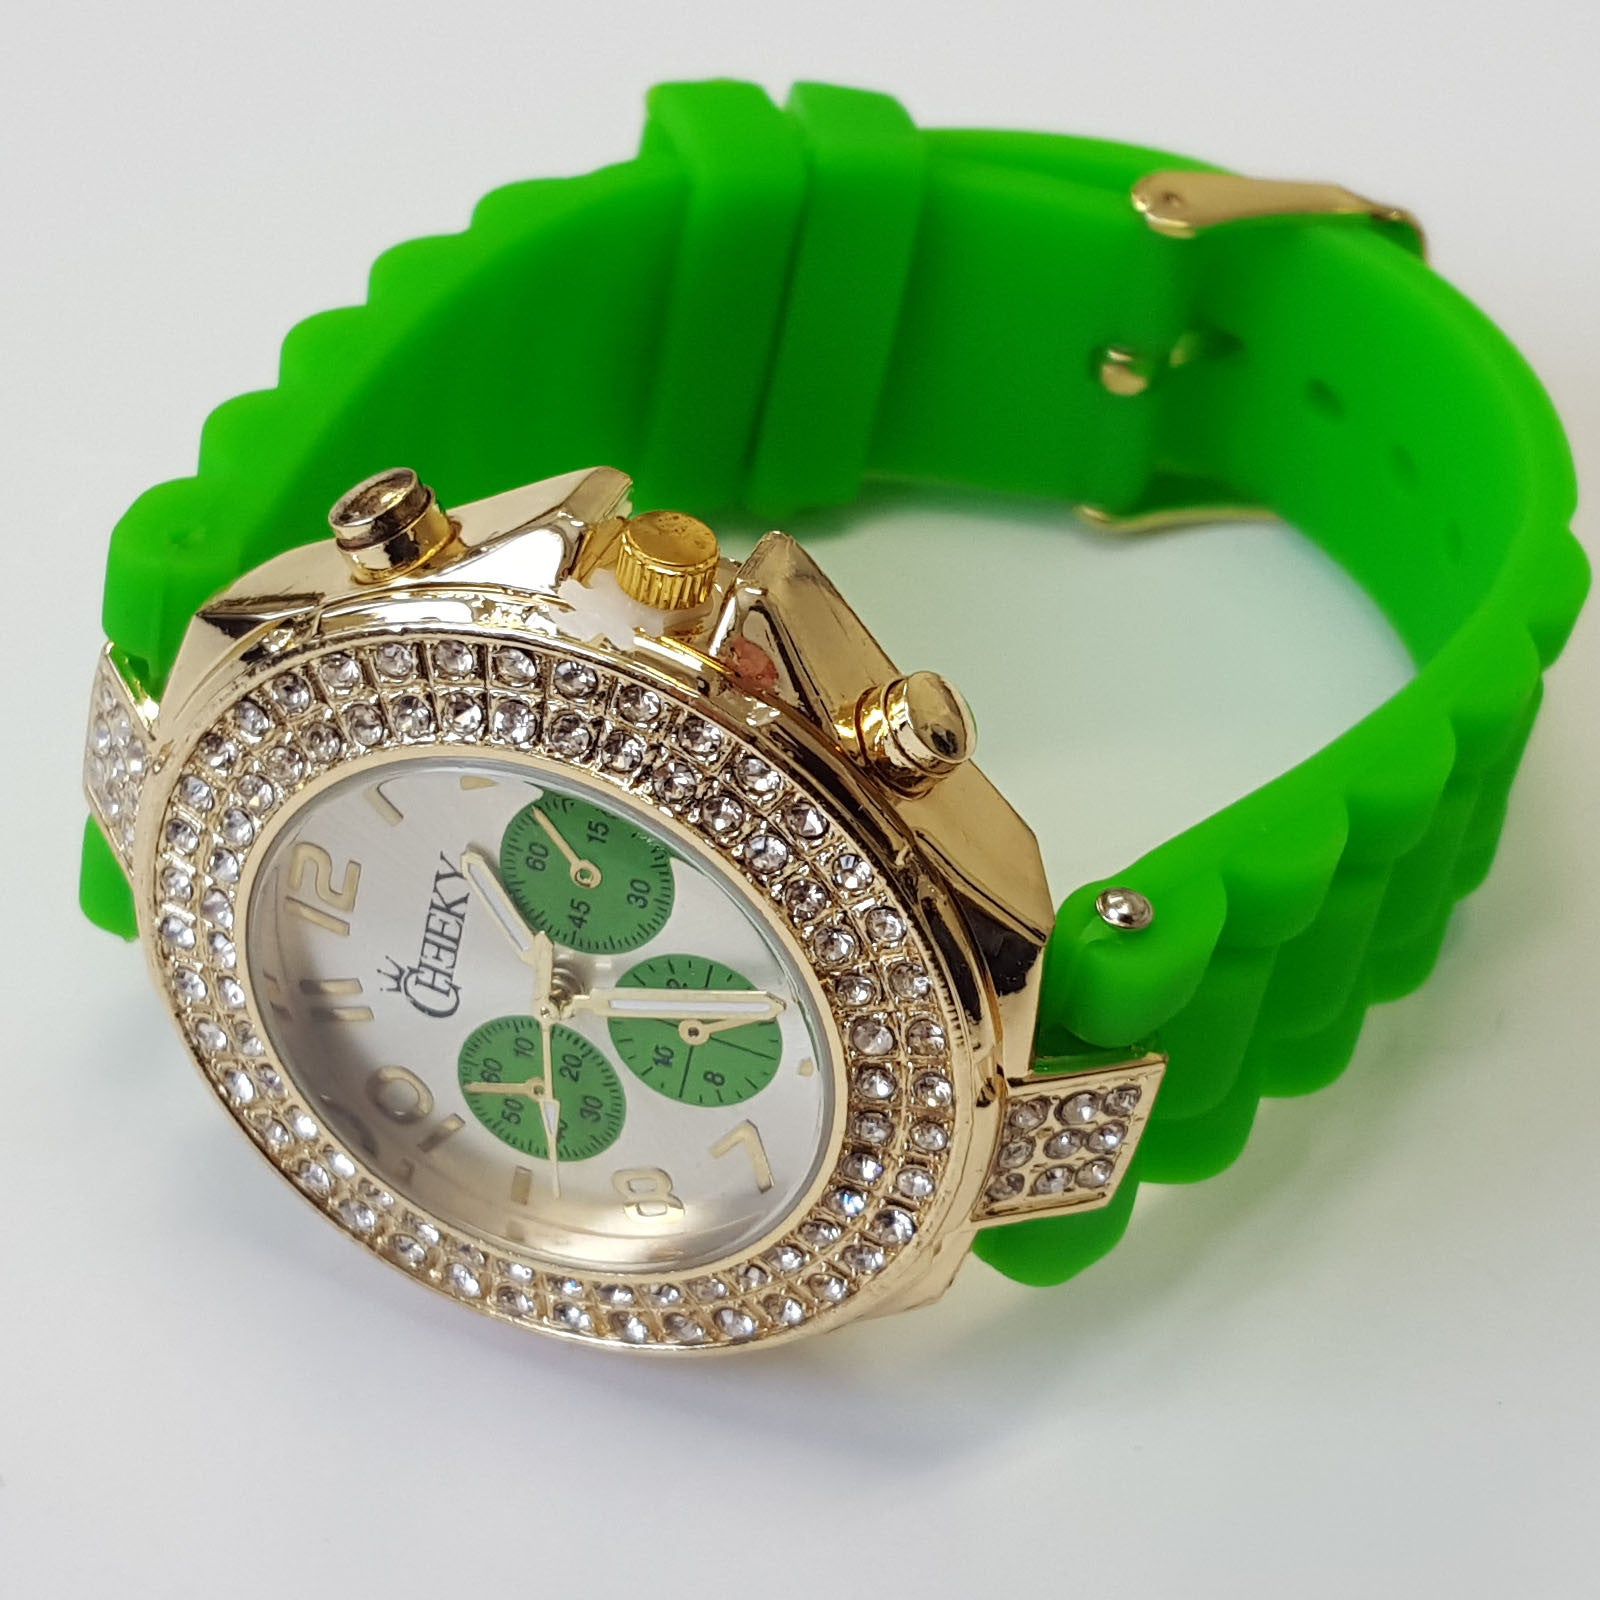 Cheeky Ladies Watch Gold Dial Analogue Green Silicone Strap HE003 Green Gold